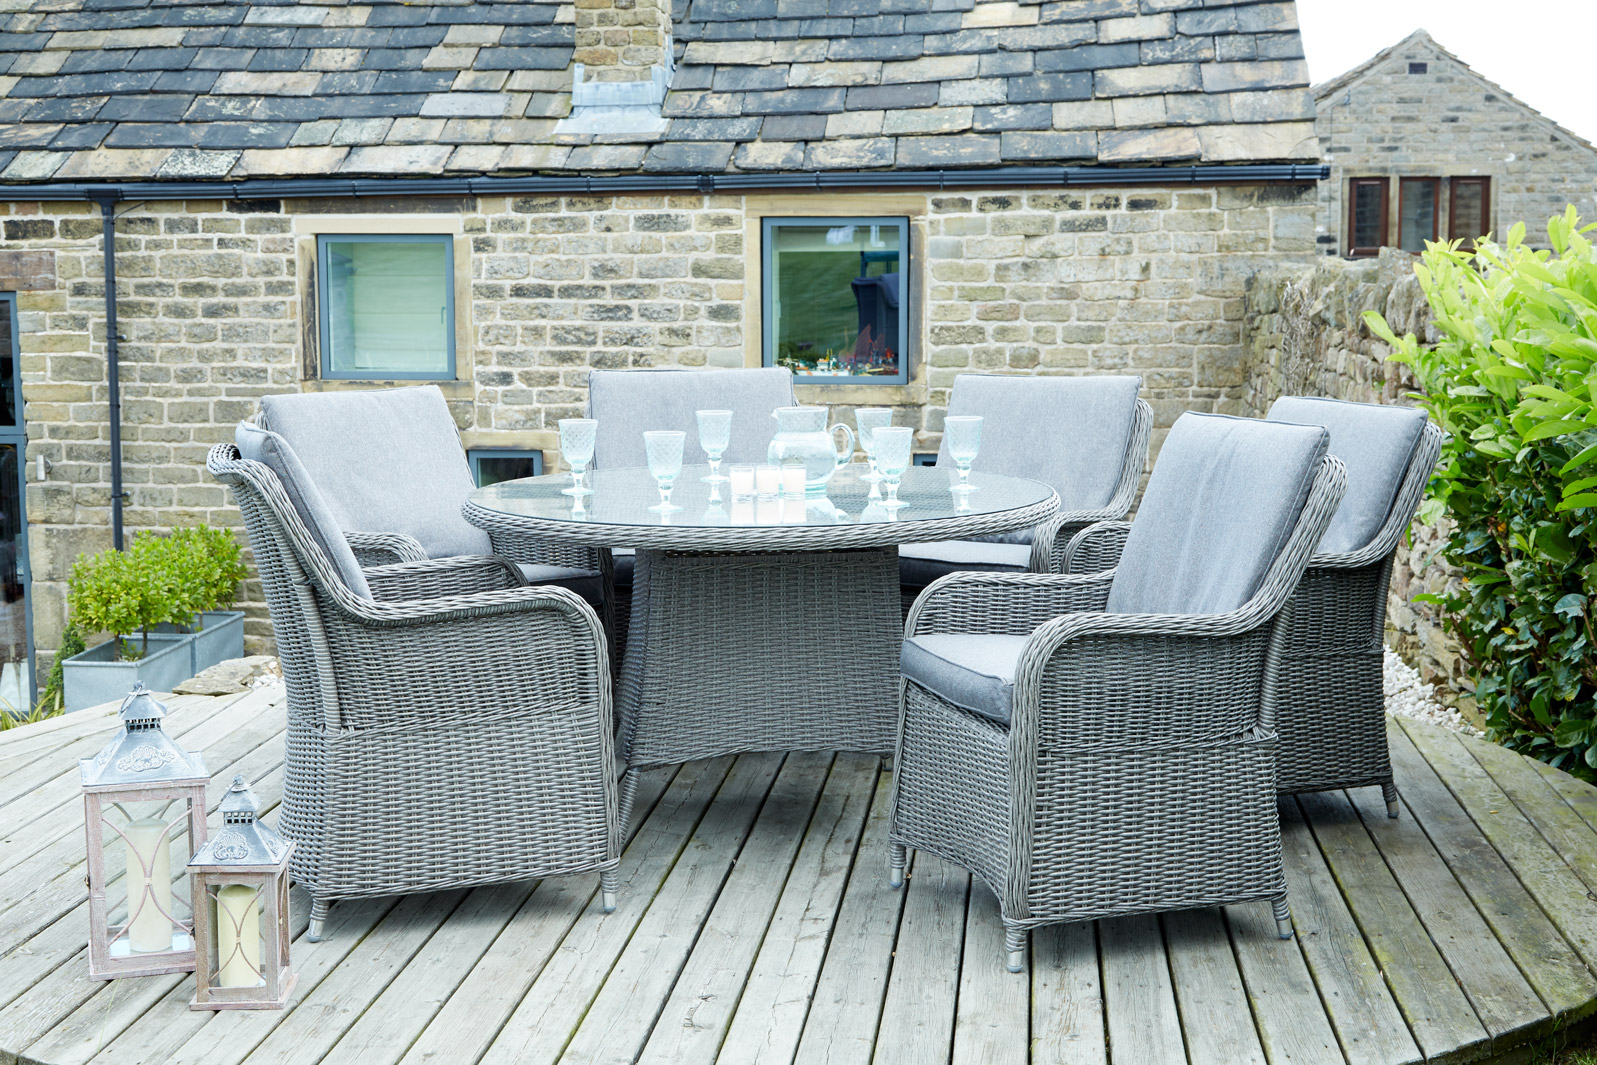 https://www.firstfurniture.co.uk/pub/media/catalog/product/1/8/18-129-sg.jpg